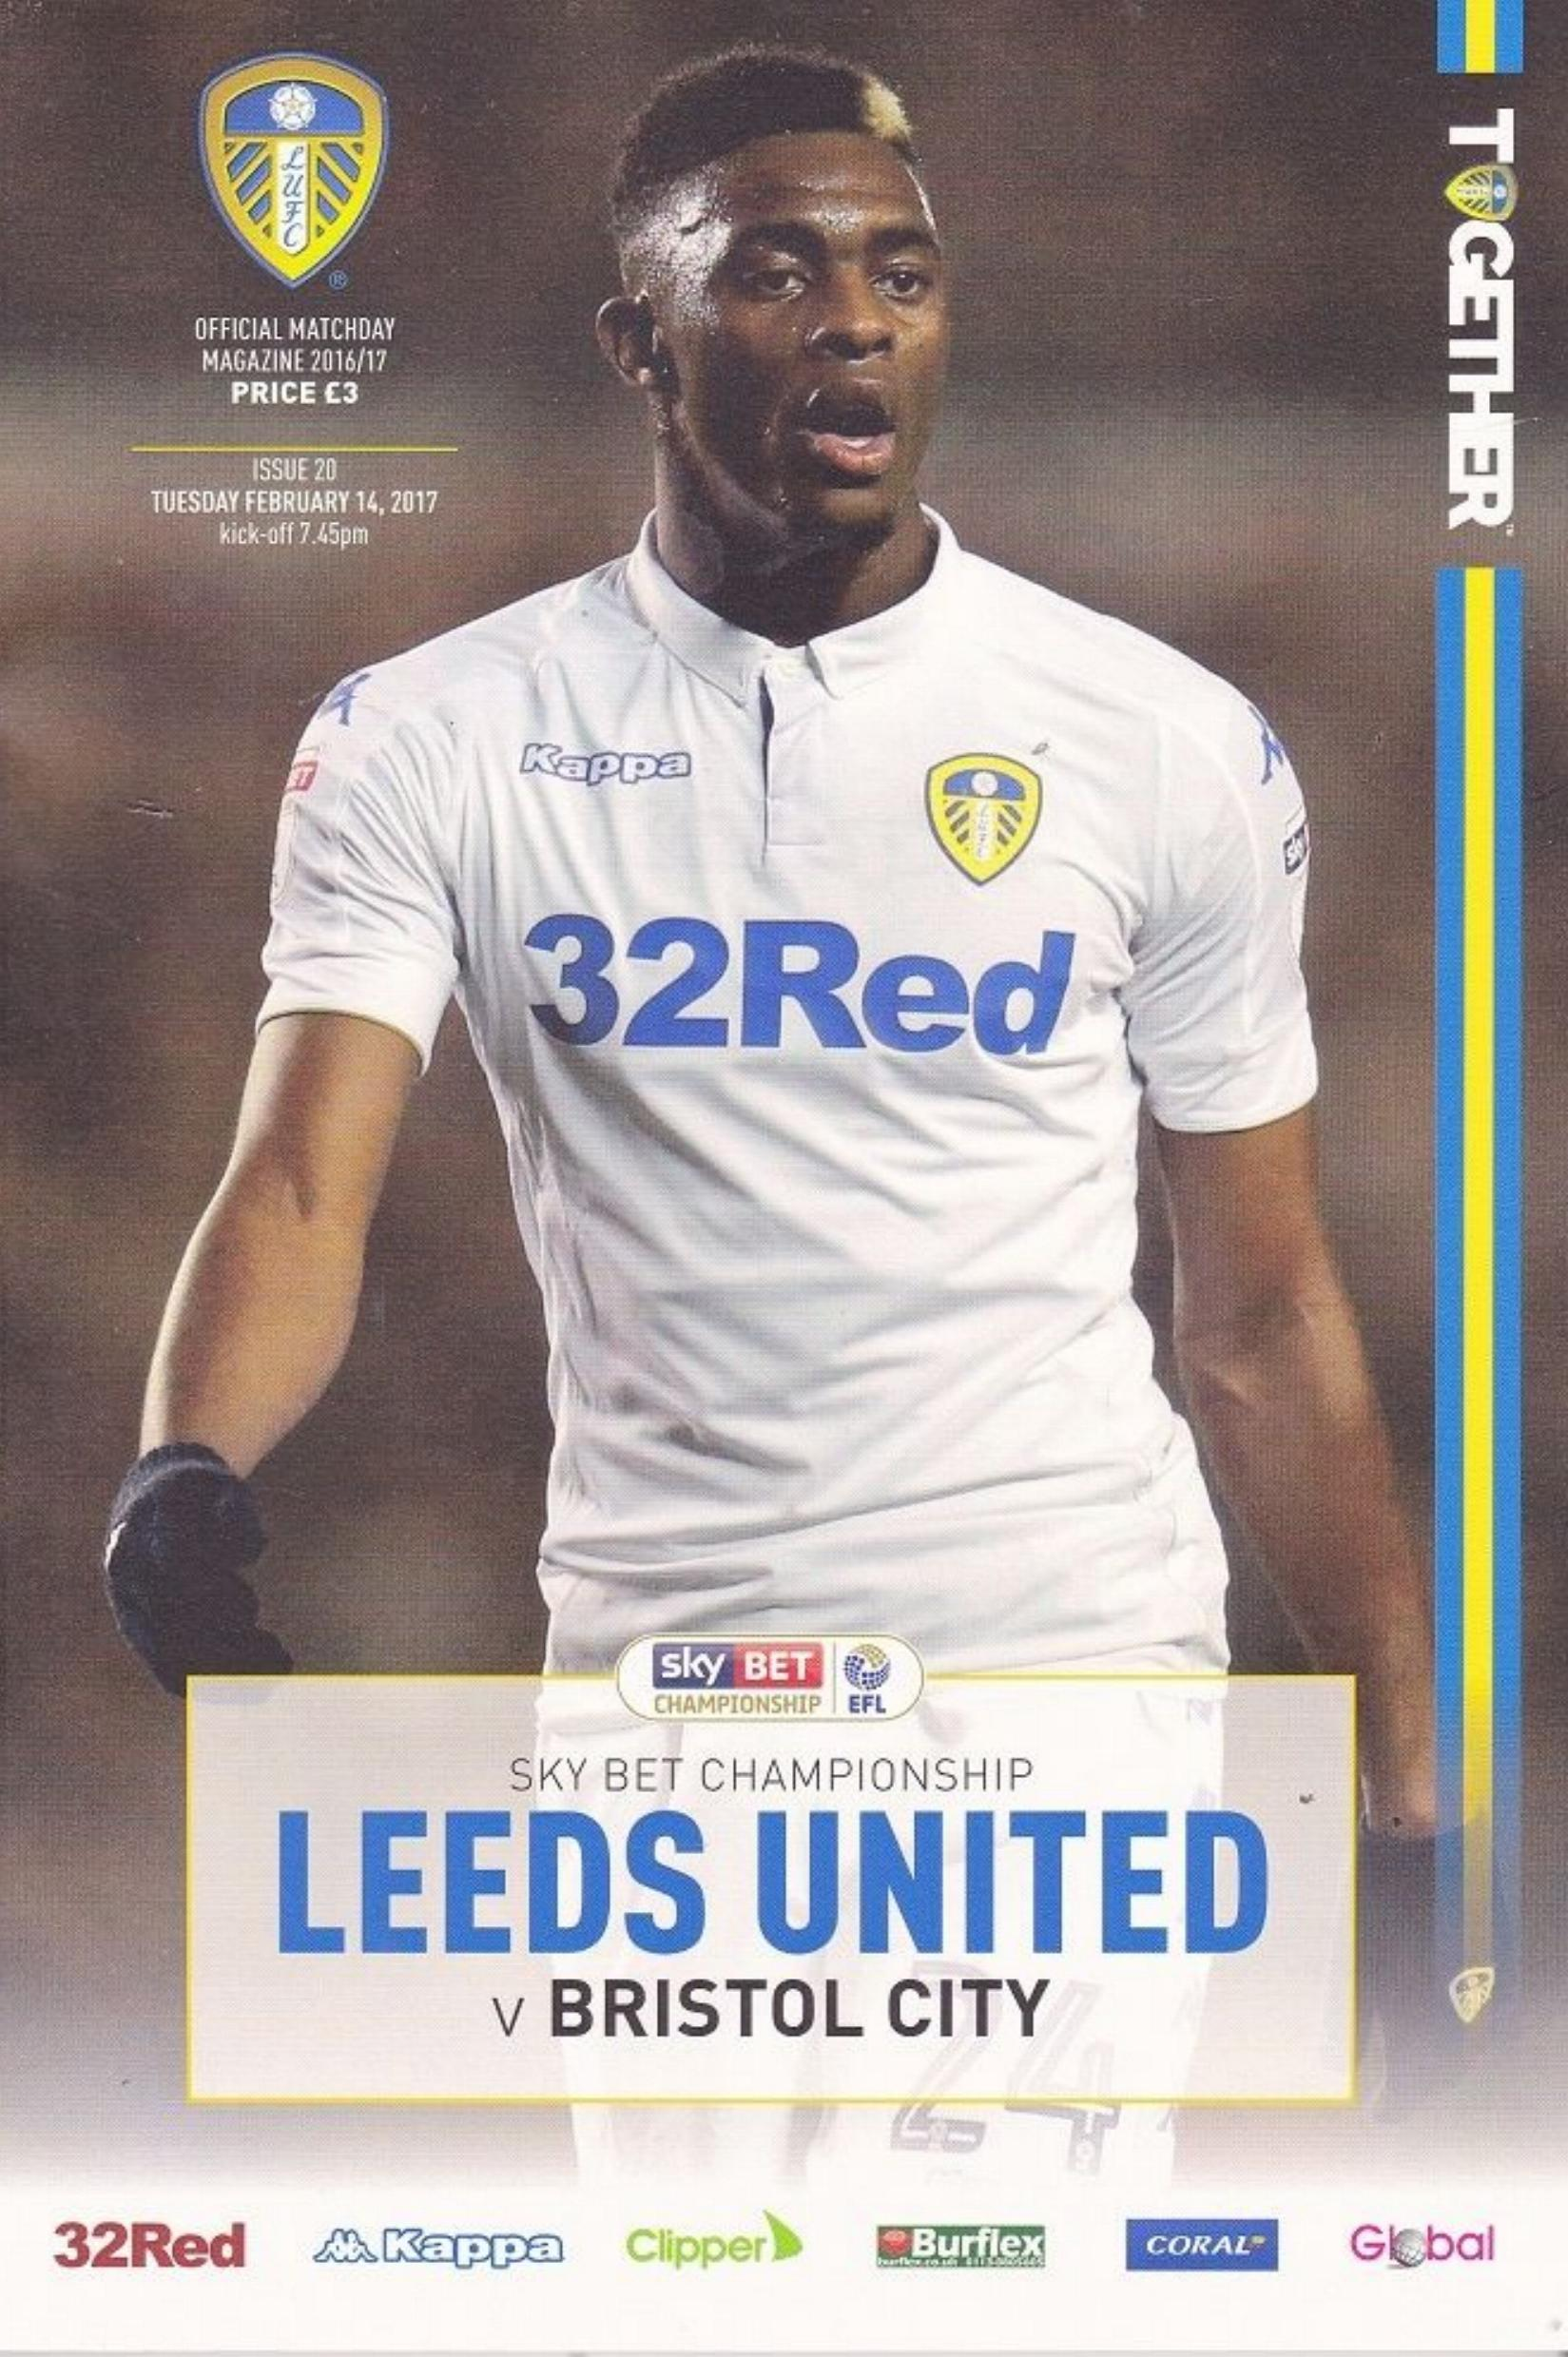 LEEDS UNITED v BRISTOL CITY 2016/17